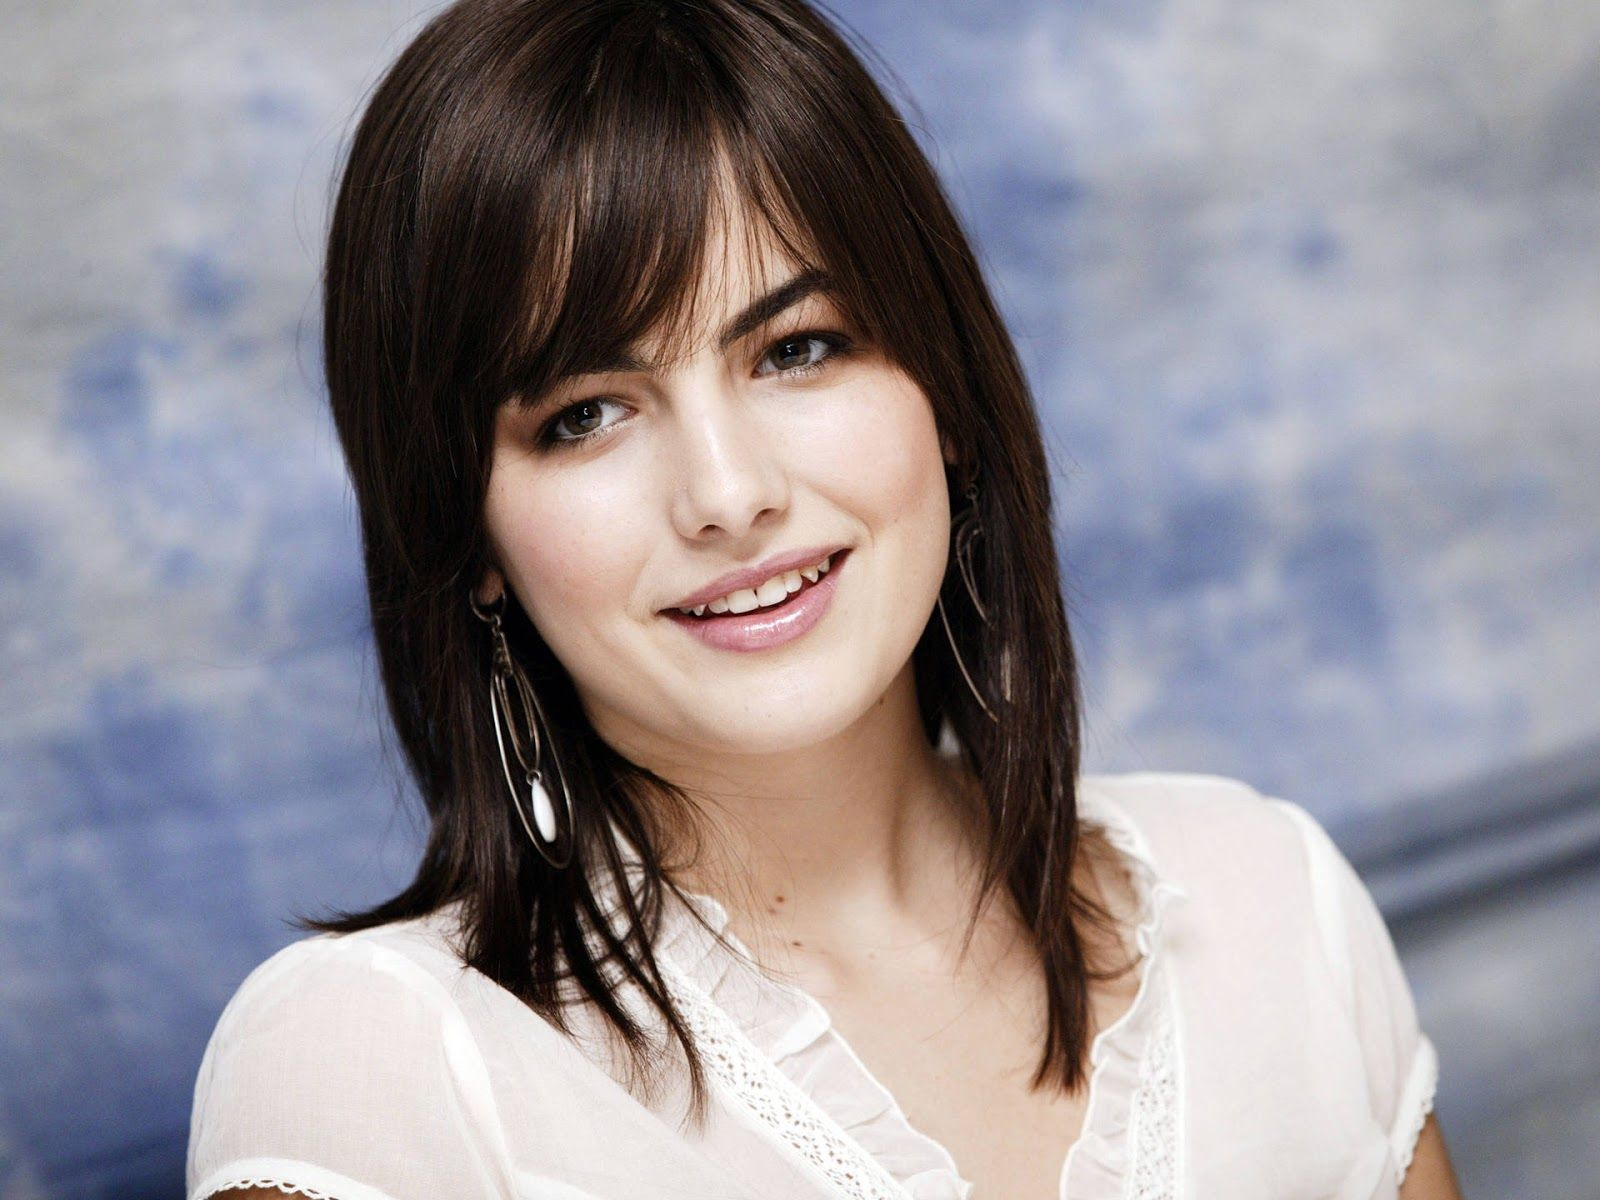 1600x1200 Camilla Belle Hollywood Actress Latest Hot Hd Wallpaper 2013 ...